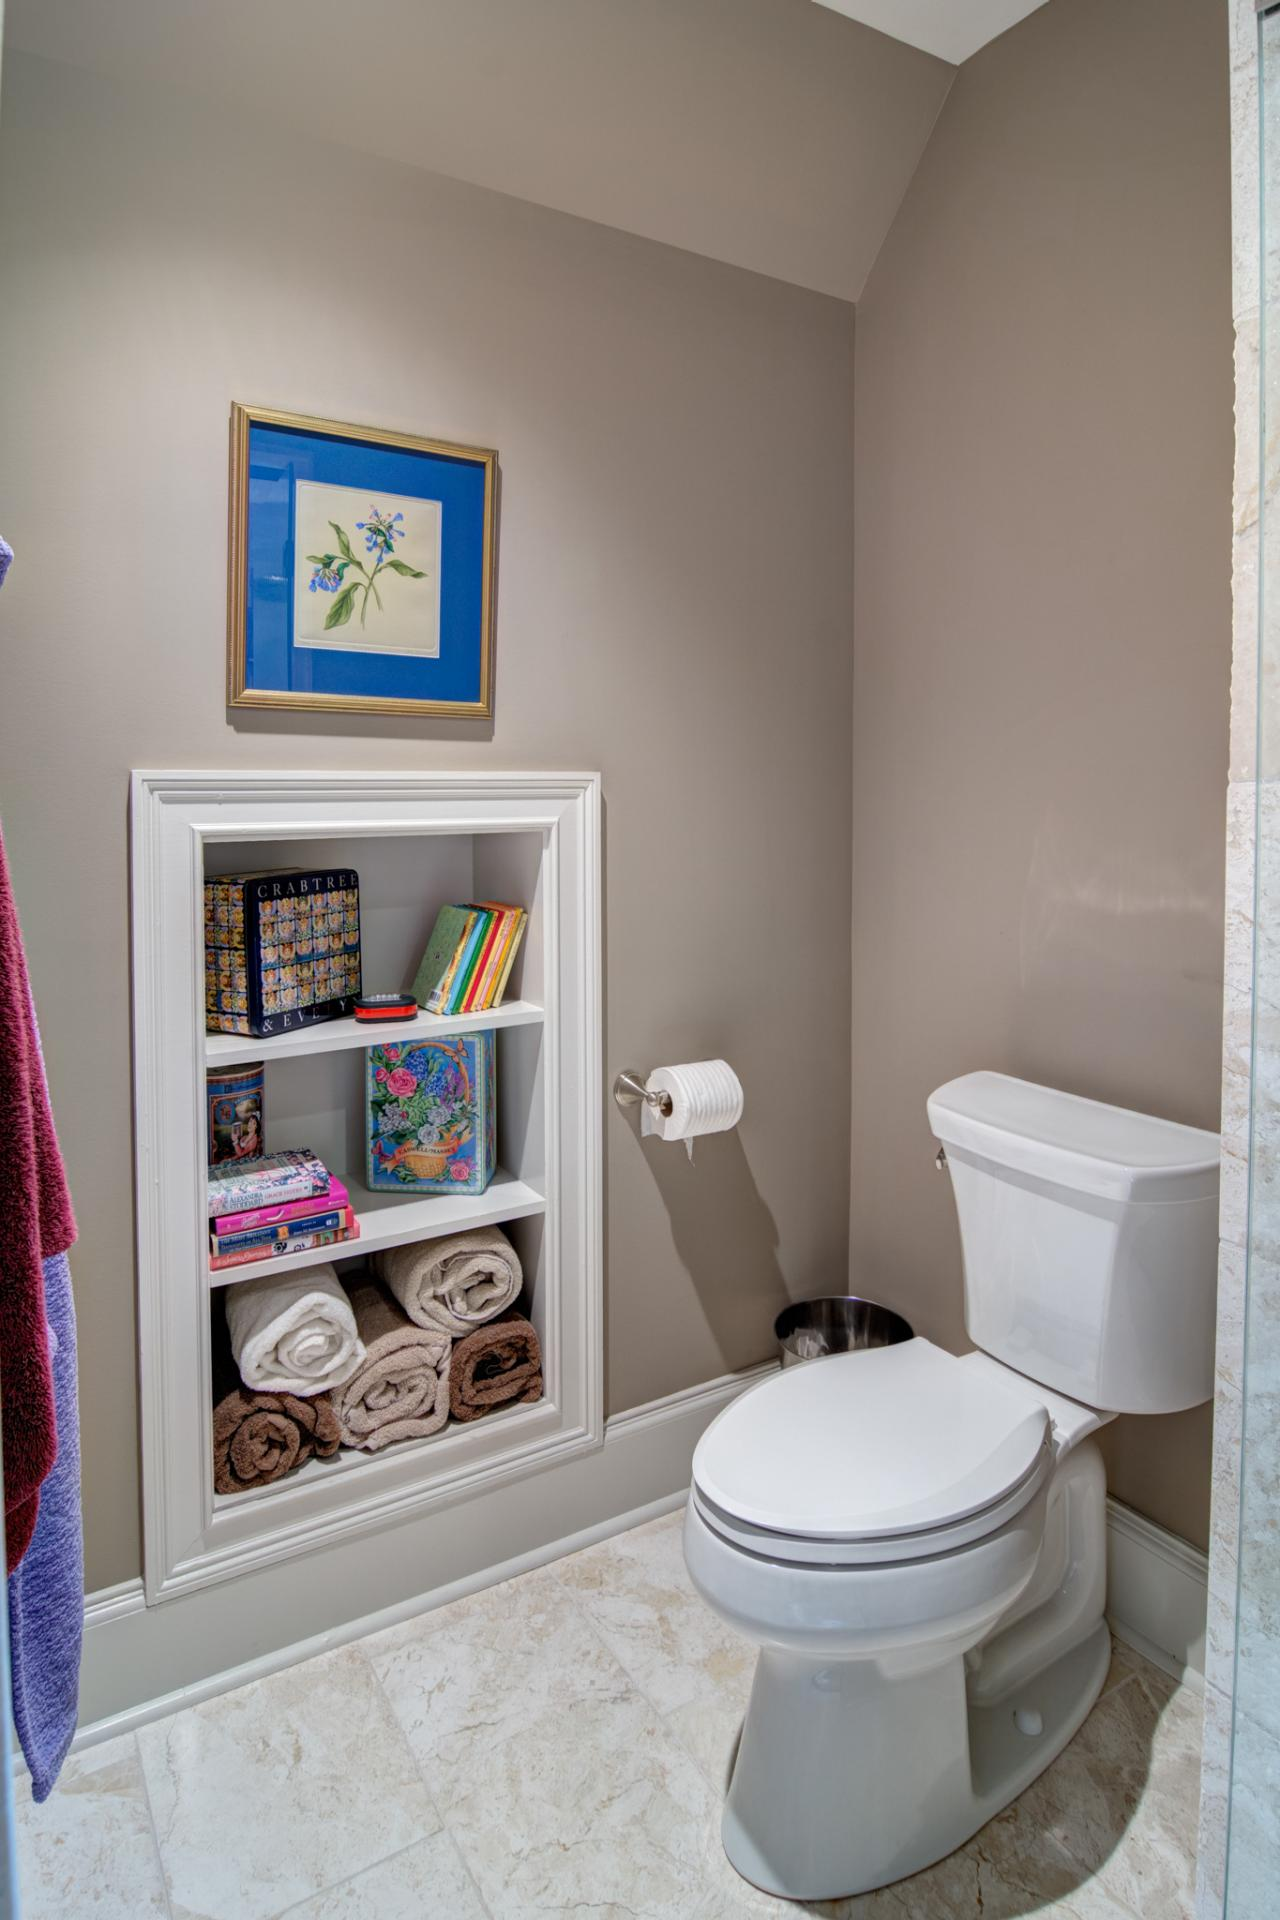 Small space bathroom storage ideas diy network blog for Small bathroom wall ideas